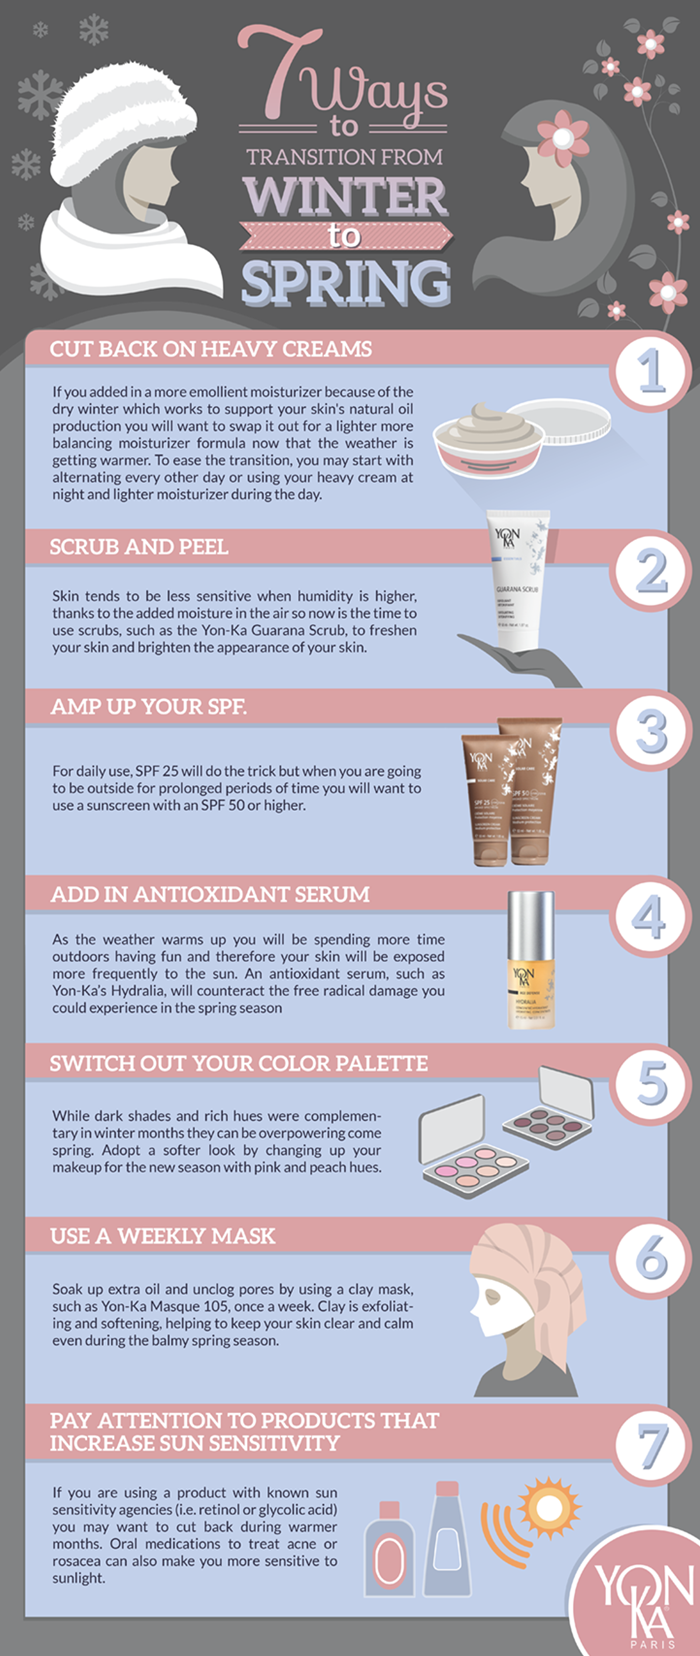 12 Ways to Transition Your Skincare Routine from Winter to Spring